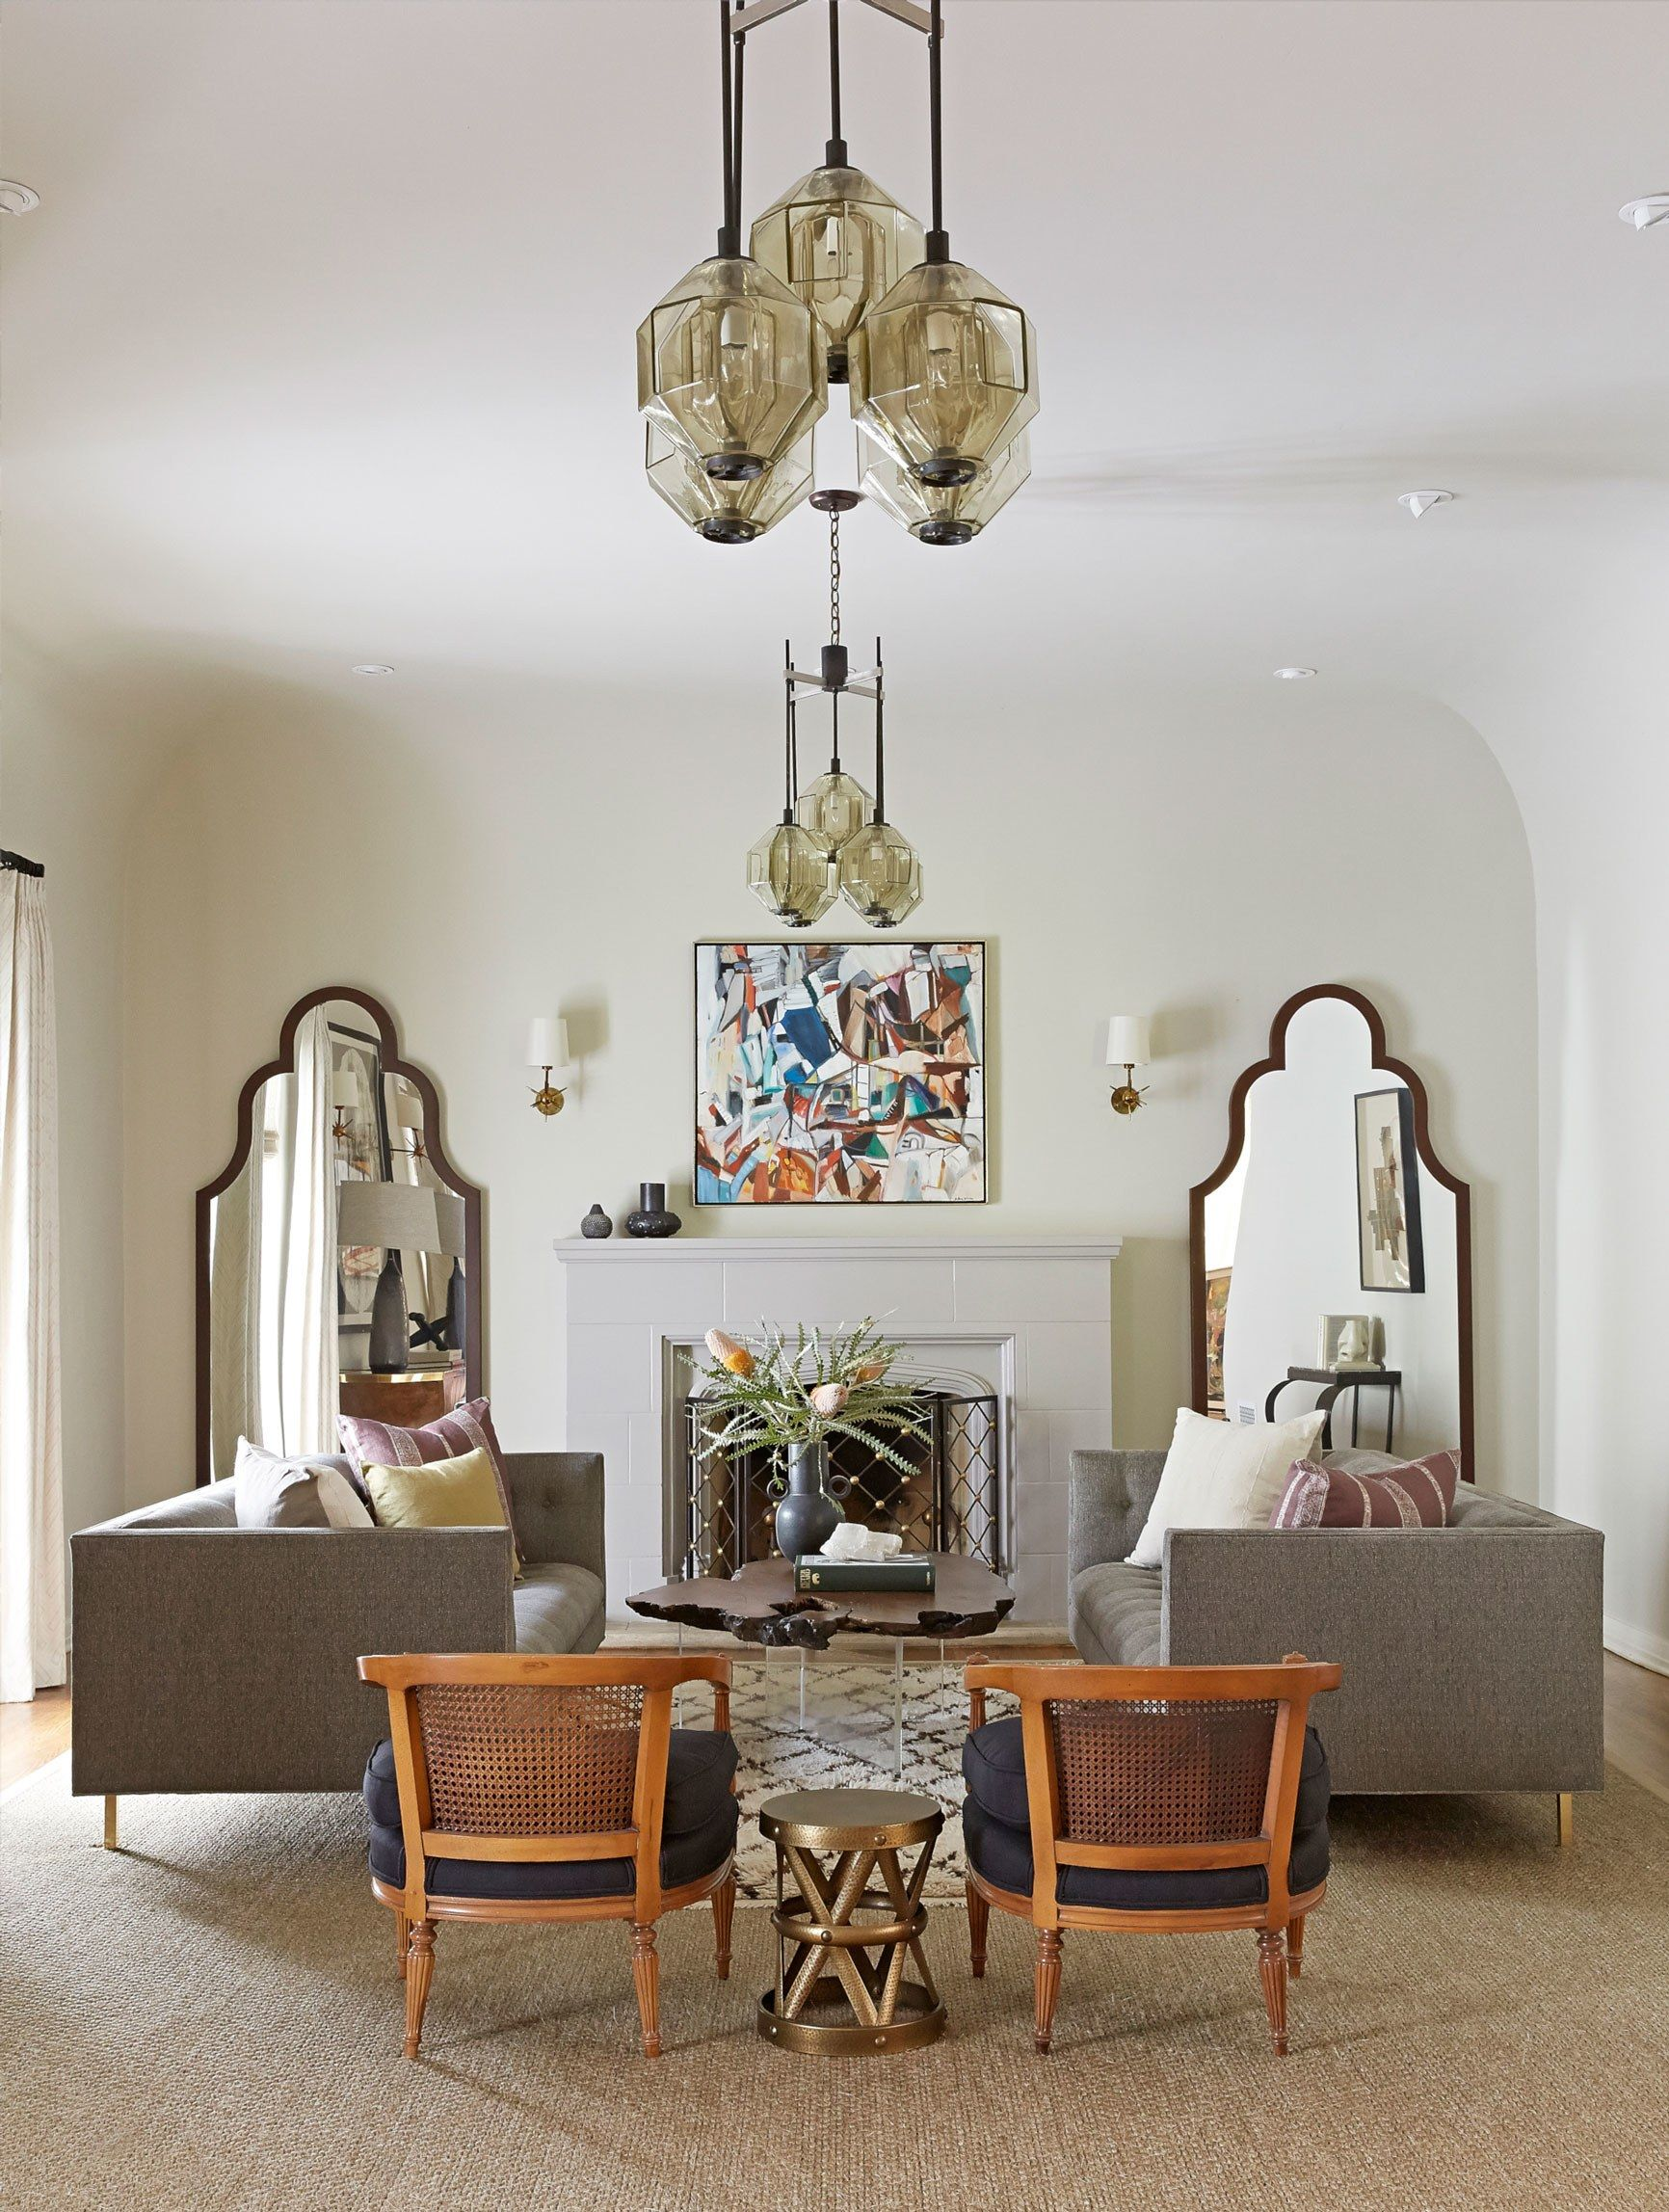 Step Inside a Modern, Eclectic Mediterranean Home in Los Angeles ...